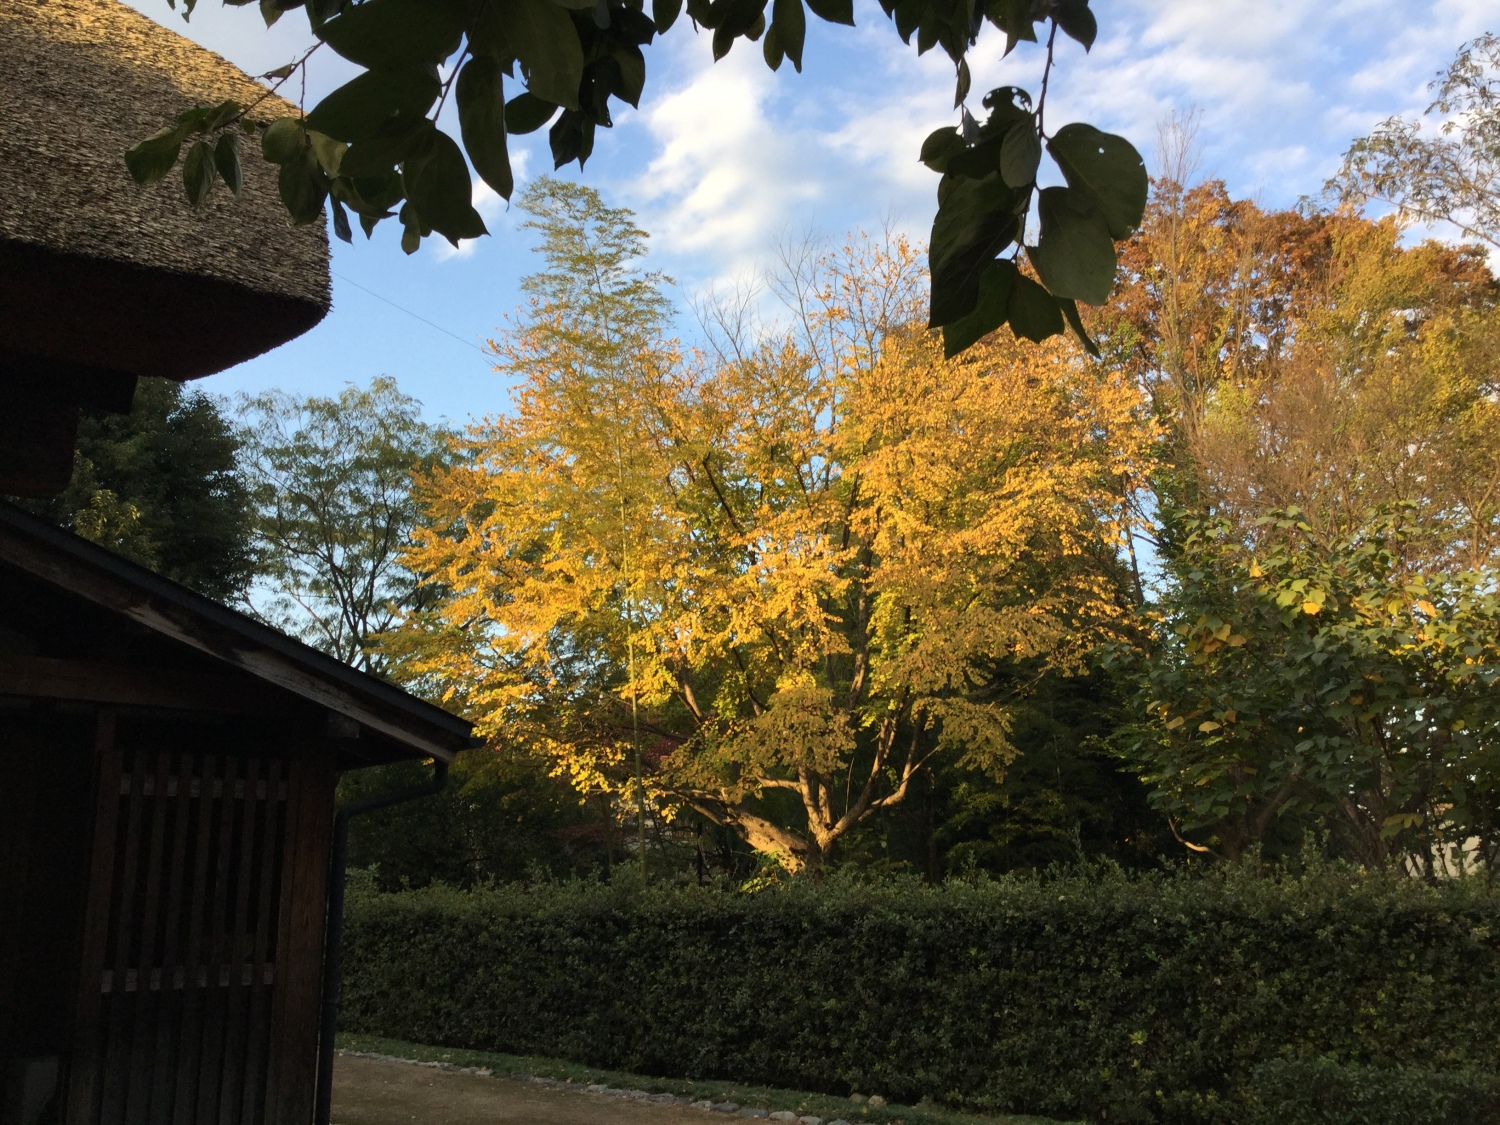 Autumn to deepen, and to go